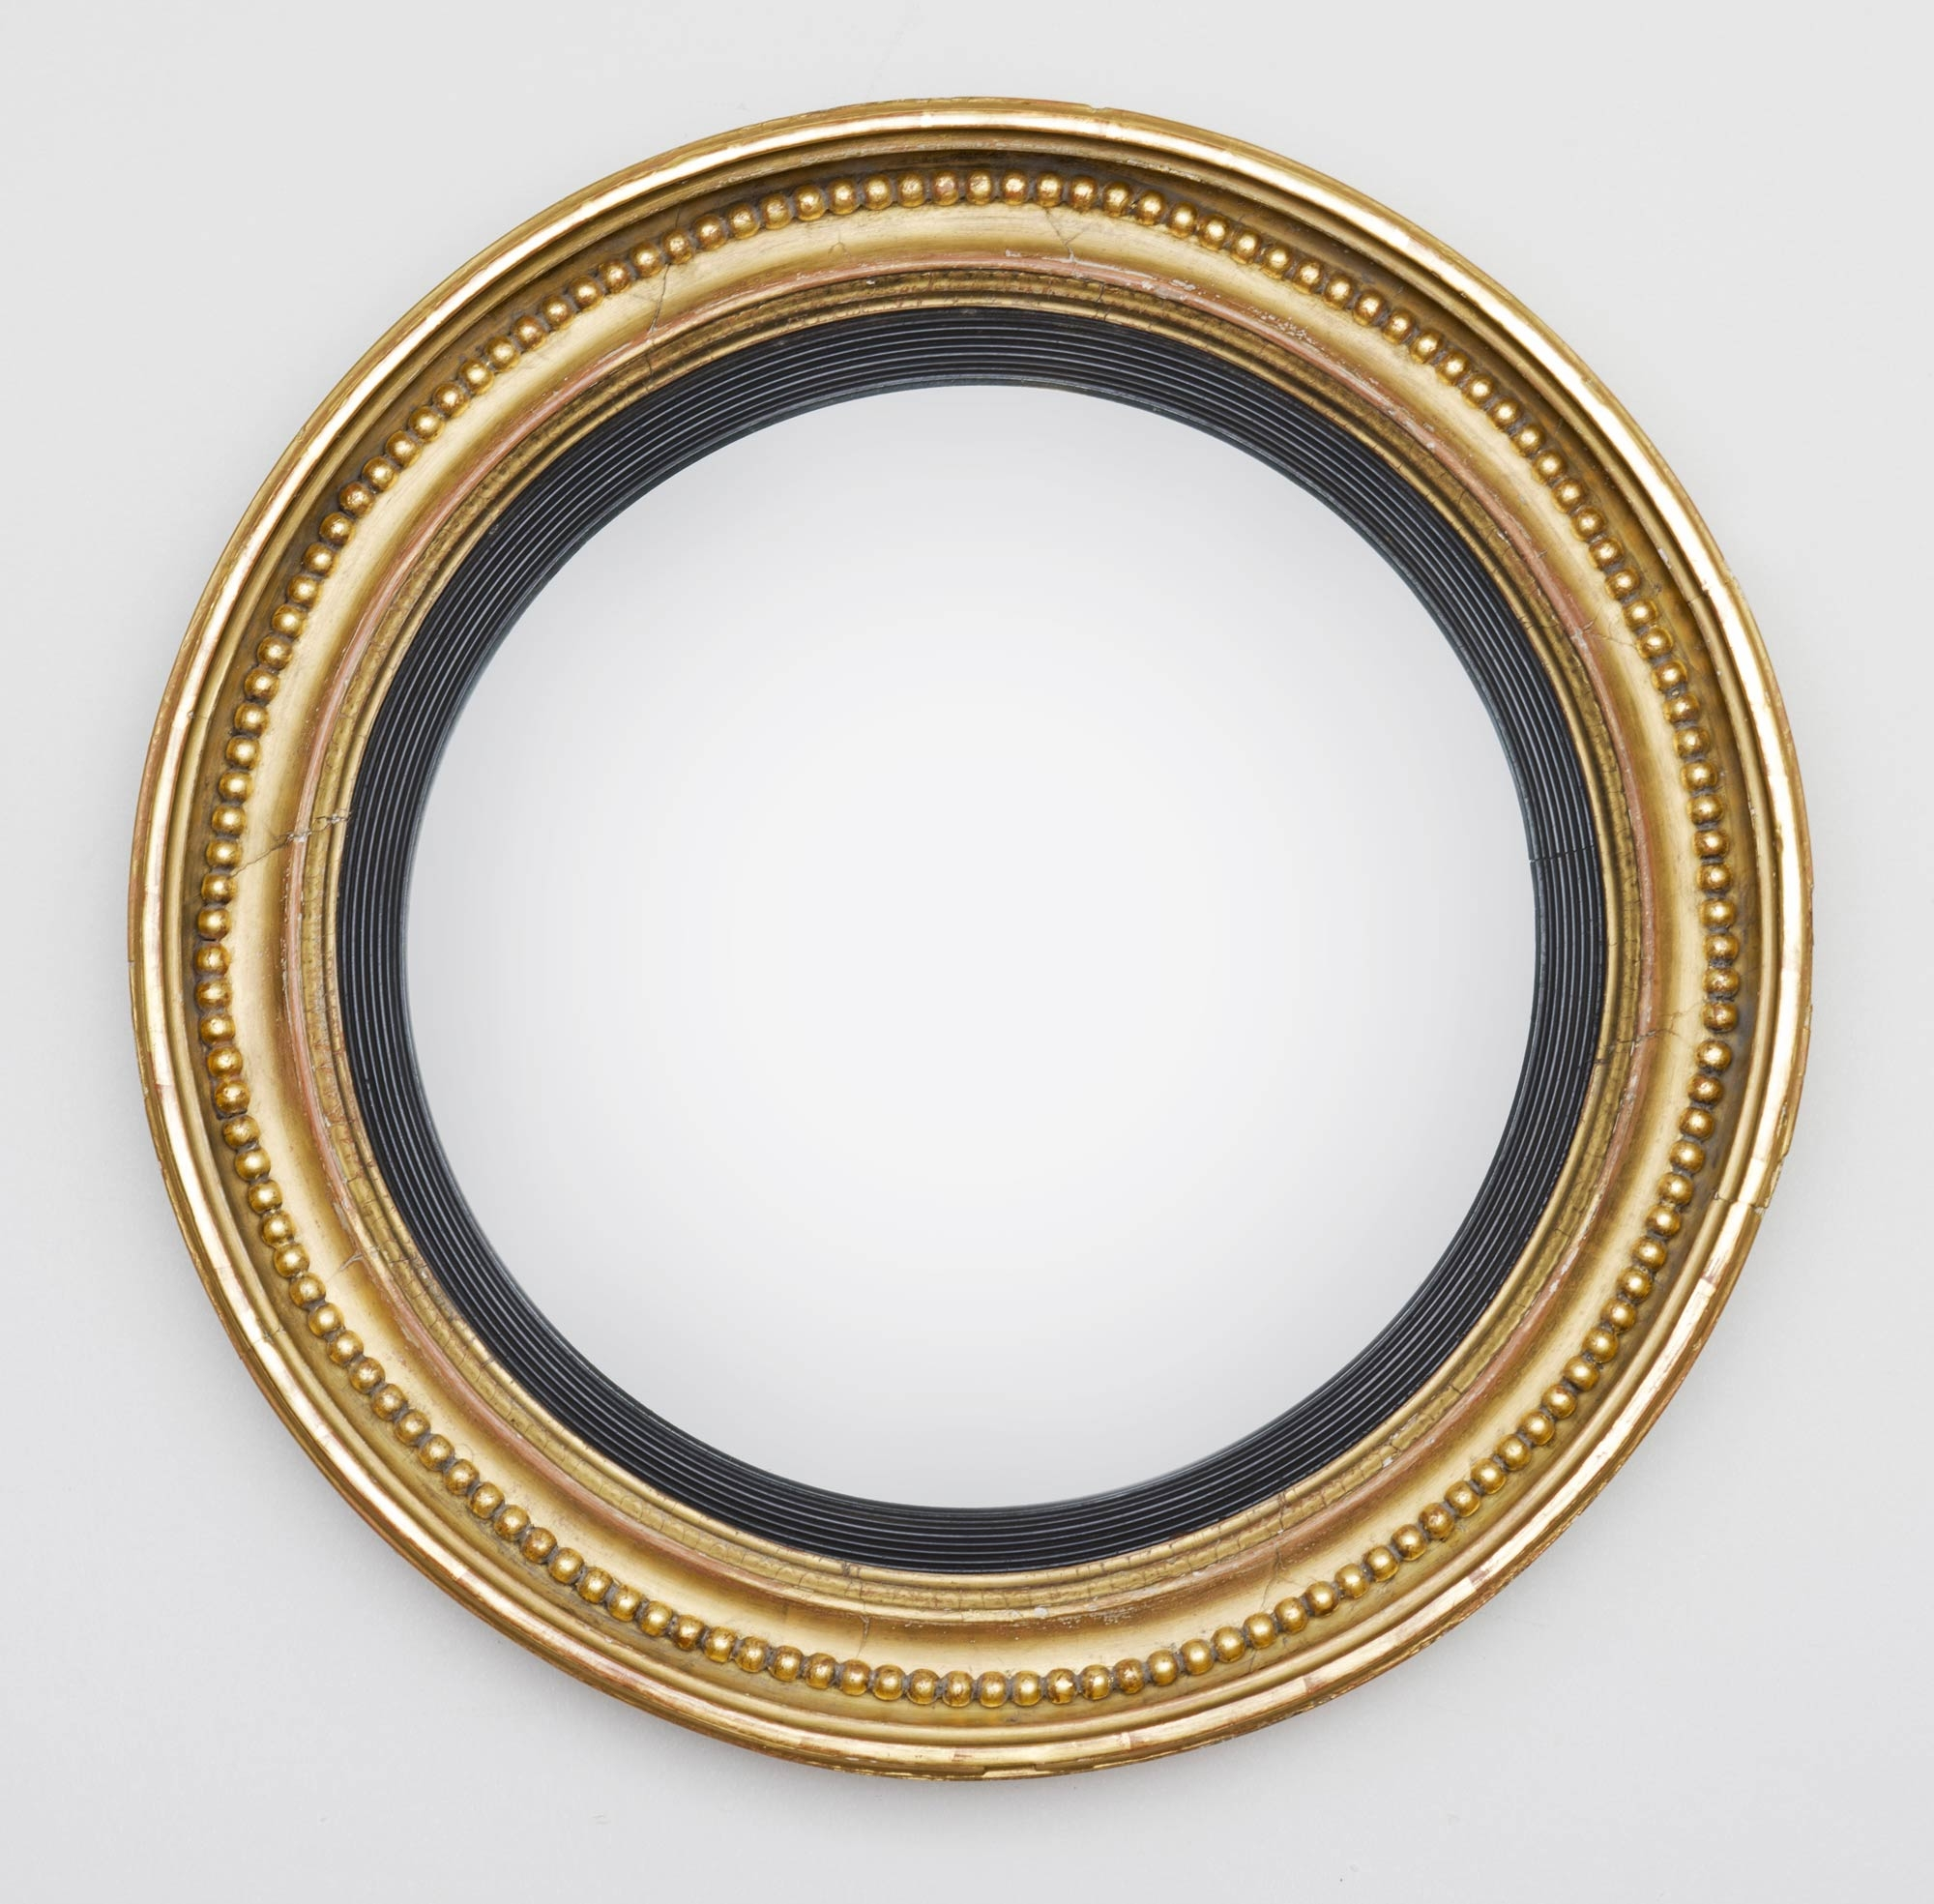 Antique Convex Mirrors 1700s 1800s Convex Mirrors For Antique Convex Mirrors For Sale (Image 3 of 15)